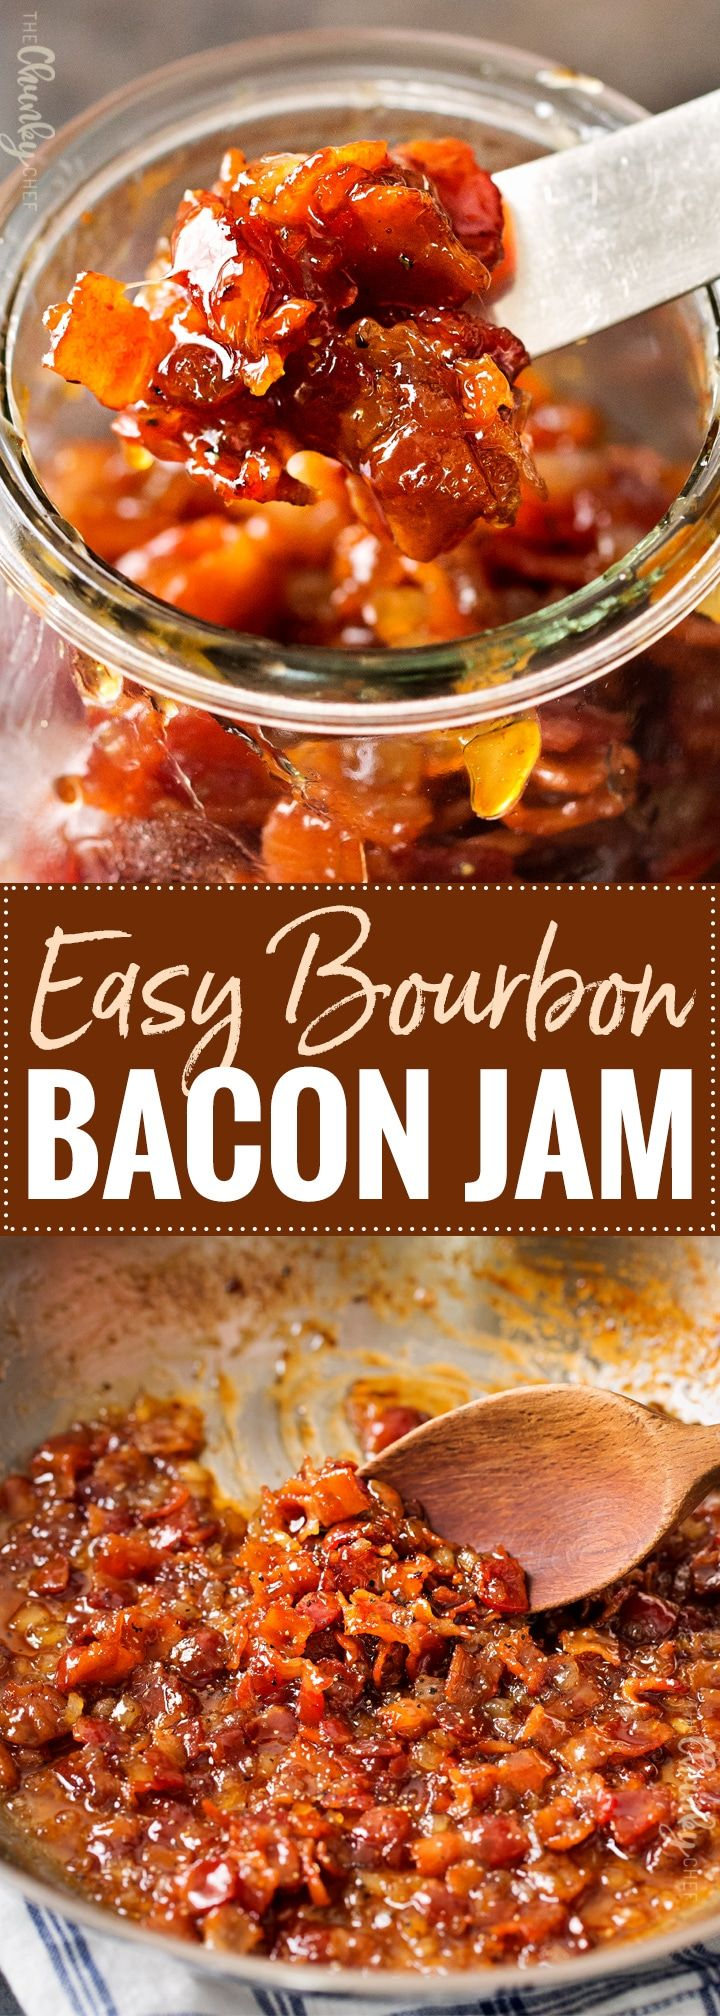 Homemade Bourbon Bacon Jam - Made in one skillet, in less than 30 minutes, this bacon jam get a boozy kick. Bourbon Recipes, Bacon Recipes, Jam Recipes, Canning Recipes, Burger Recipes, Jalapeno Recipes, Recipes Using Bacon Jam, Bacon Jam Recipe Canning, Best Bacon Jam Recipe